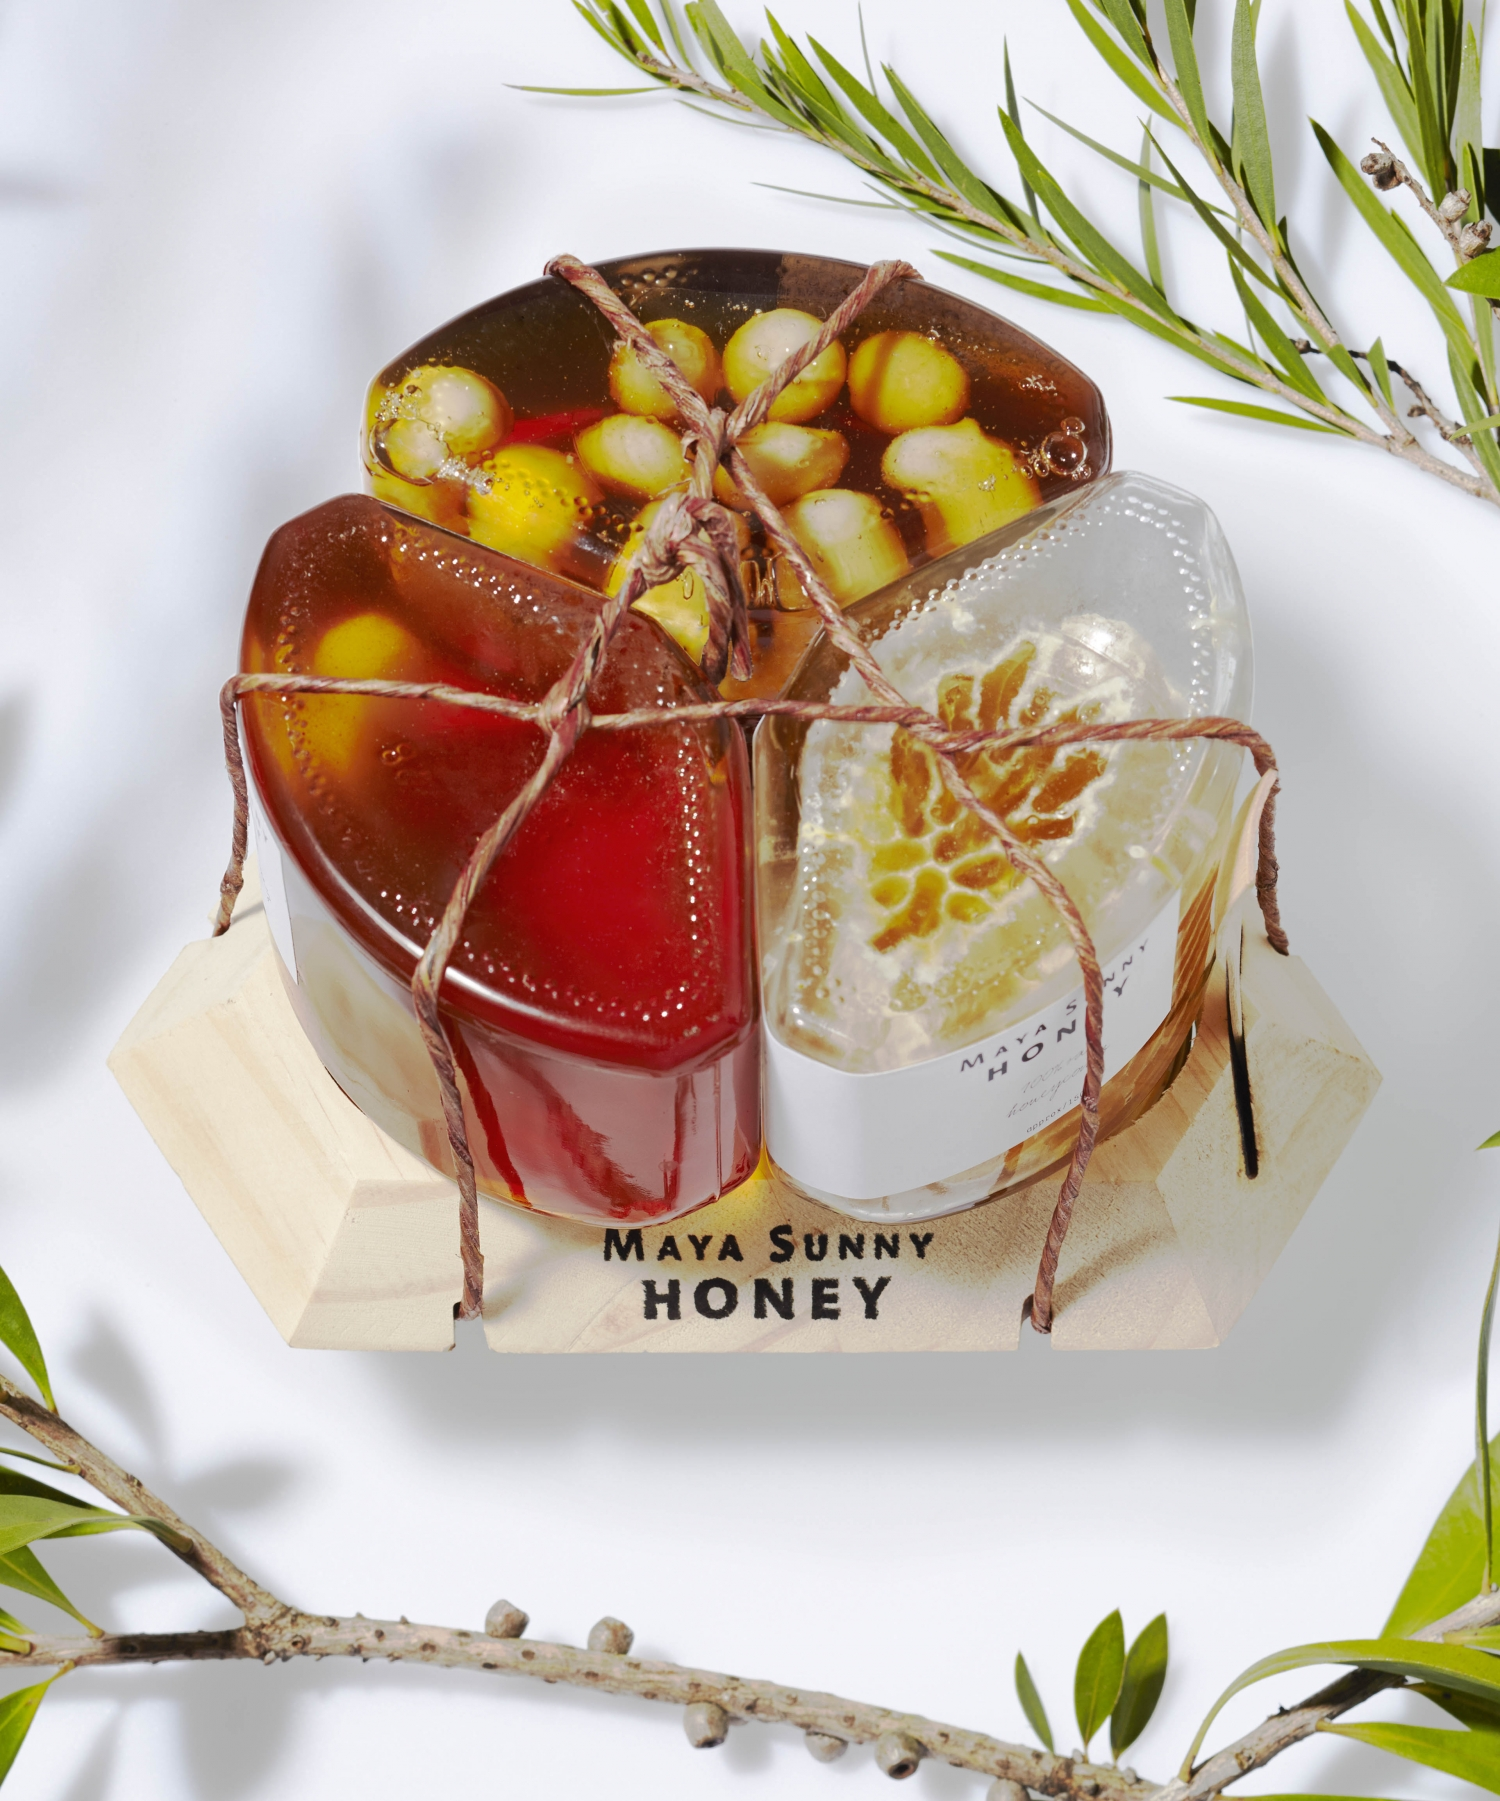 Three honey pack presented as gift with company name attached.